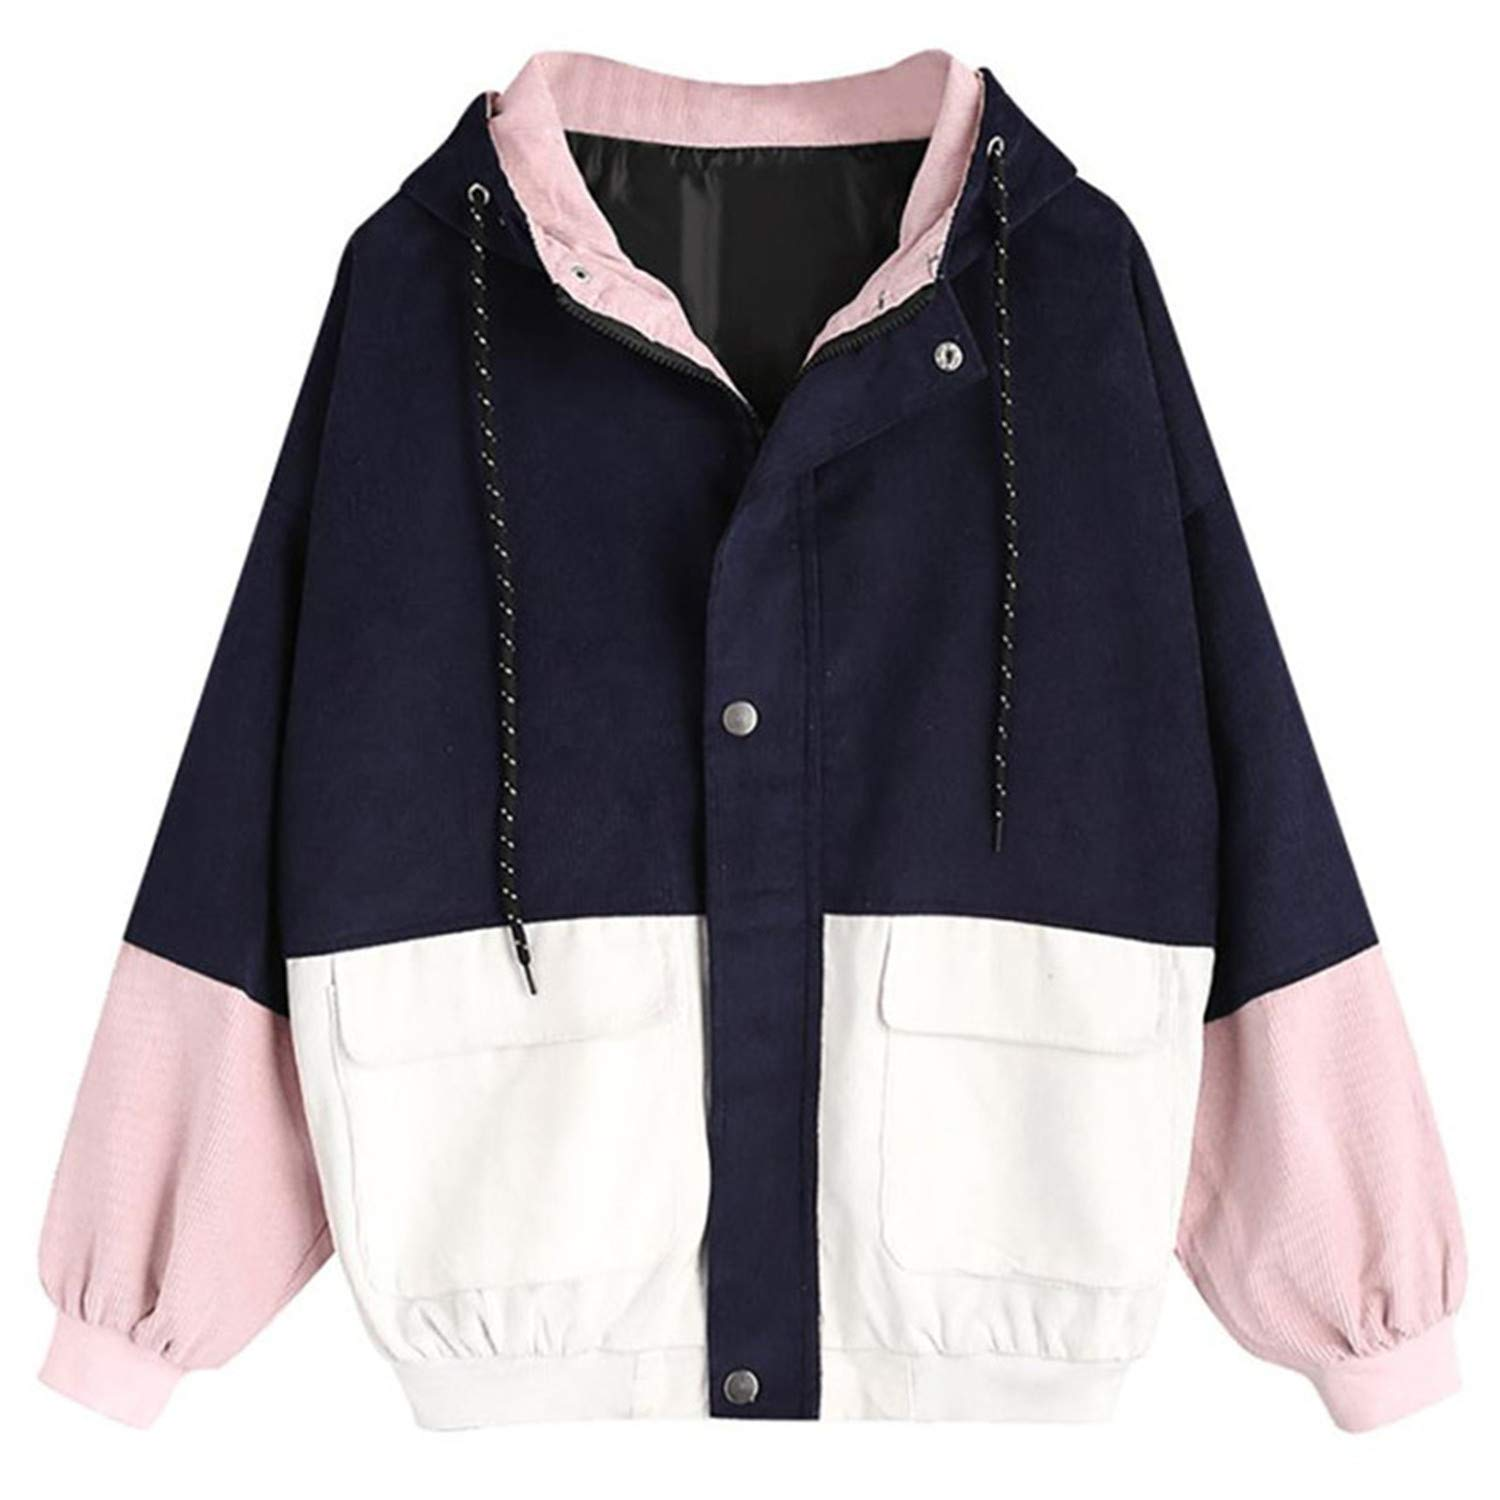 B Missrooney Hooded Two Tone Windbreaker Jacket Patchwork Jackets Women Corduroy Patchwork Oversize New Fall Casual Coats Outerwear C S